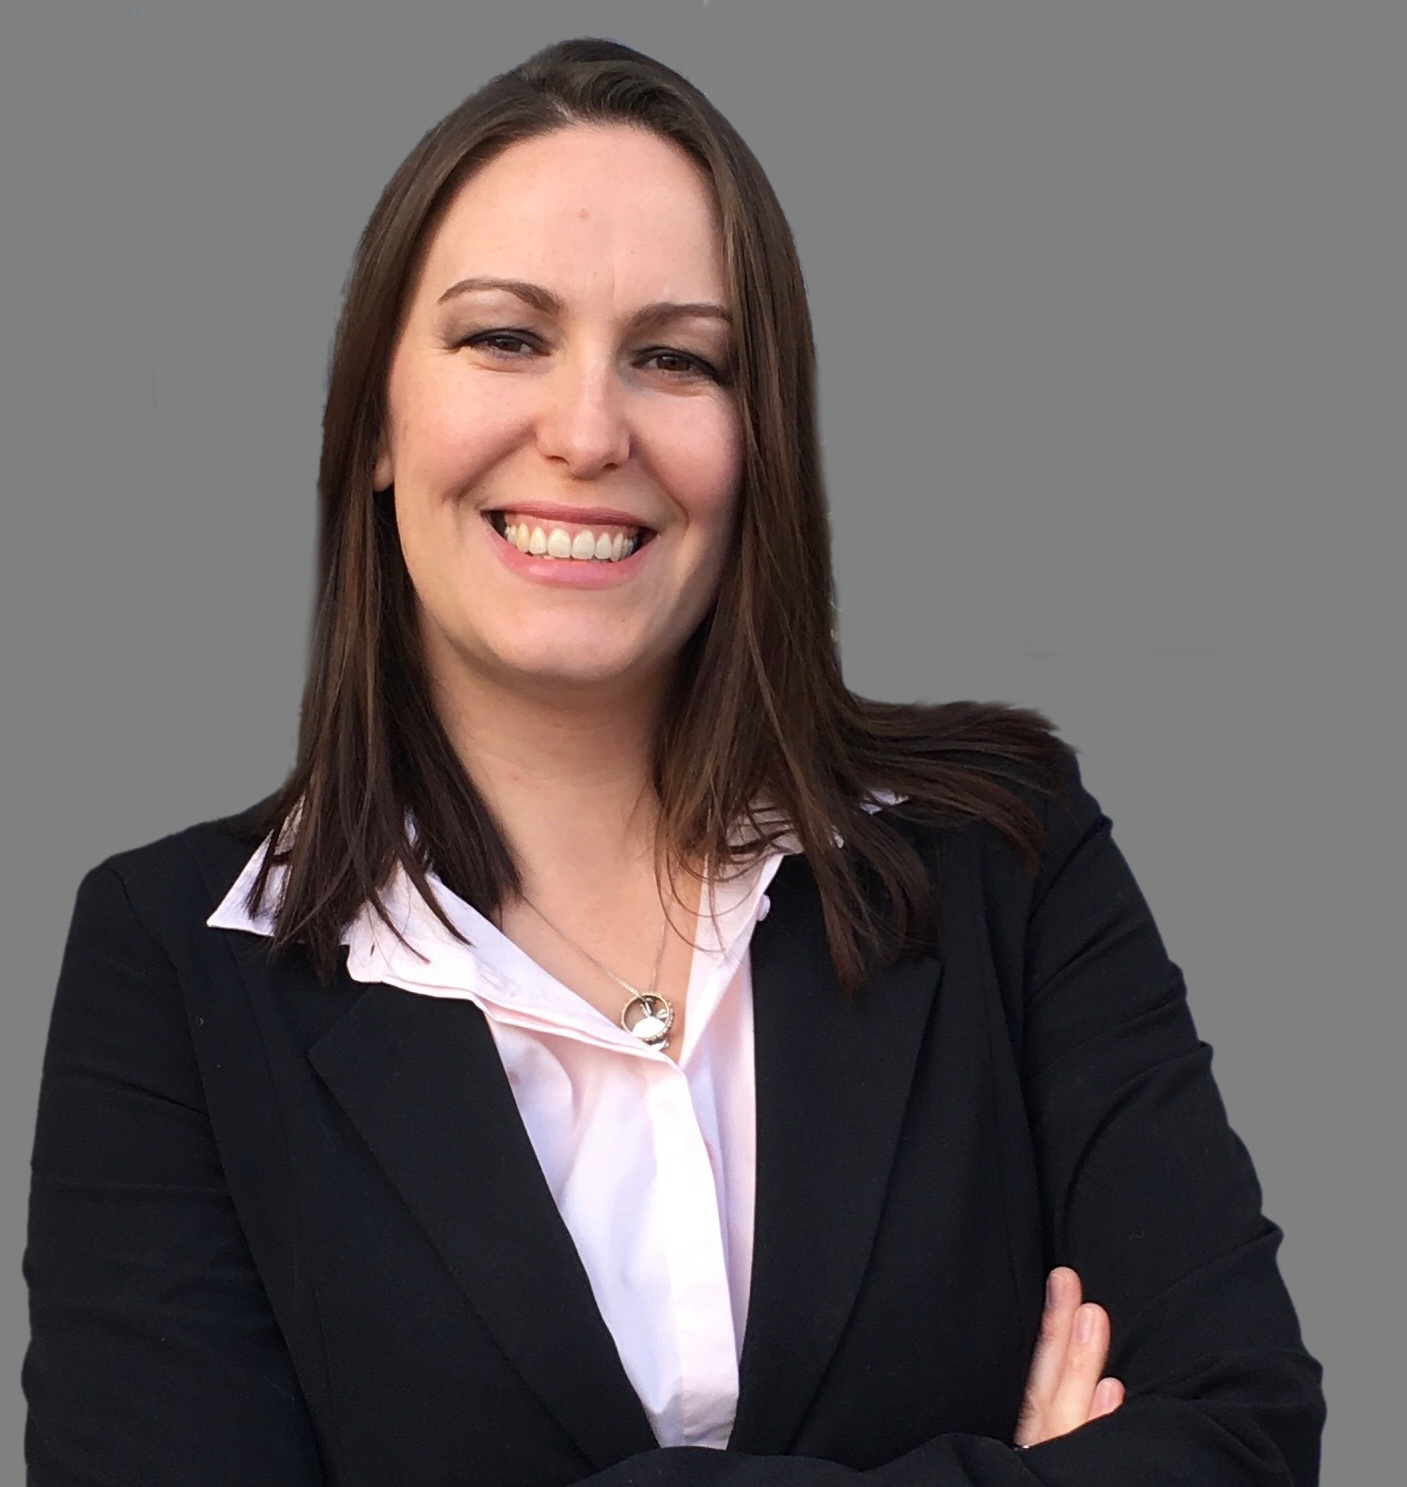 Natalie Sutherland, Solicitor and Partner at Burgess Mee Family Law Firm